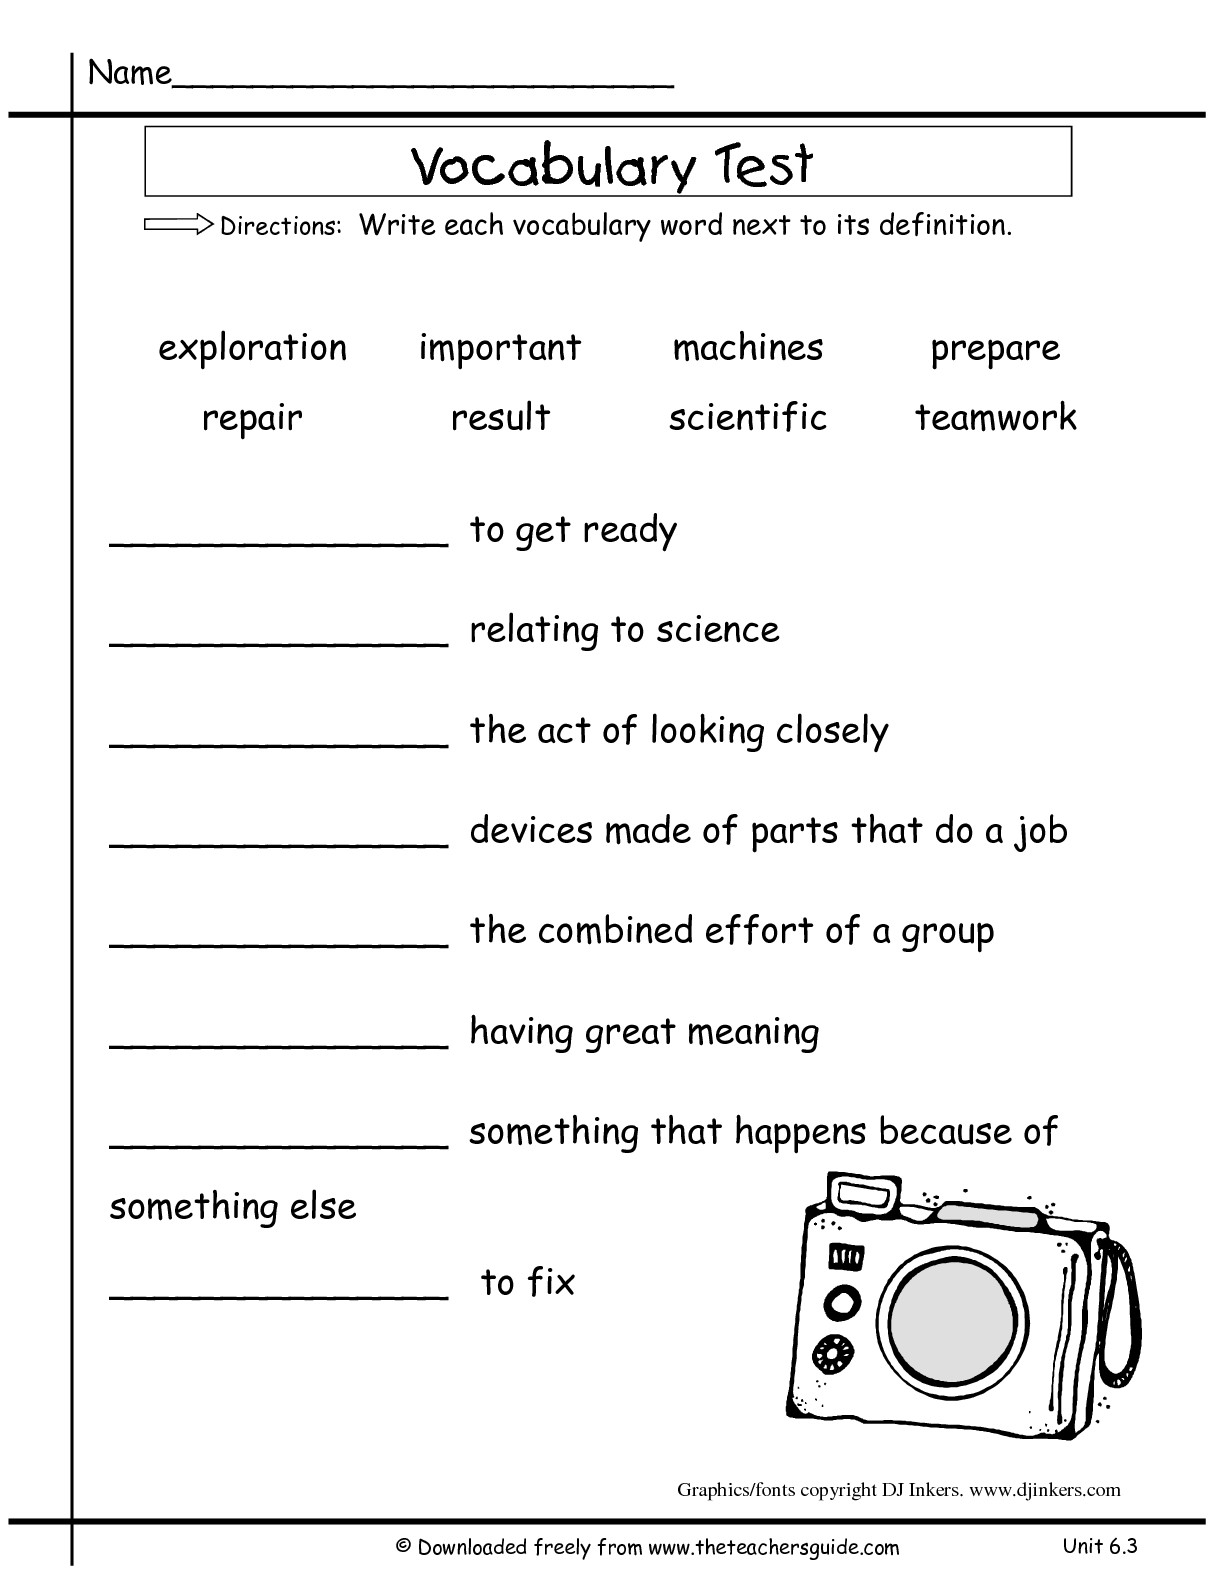 Worksheets Second Grade Vocabulary Worksheets worksheet 2nd grade vocabulary words yaqutlab free worksheets emptystretch quiz template 8 blank templates